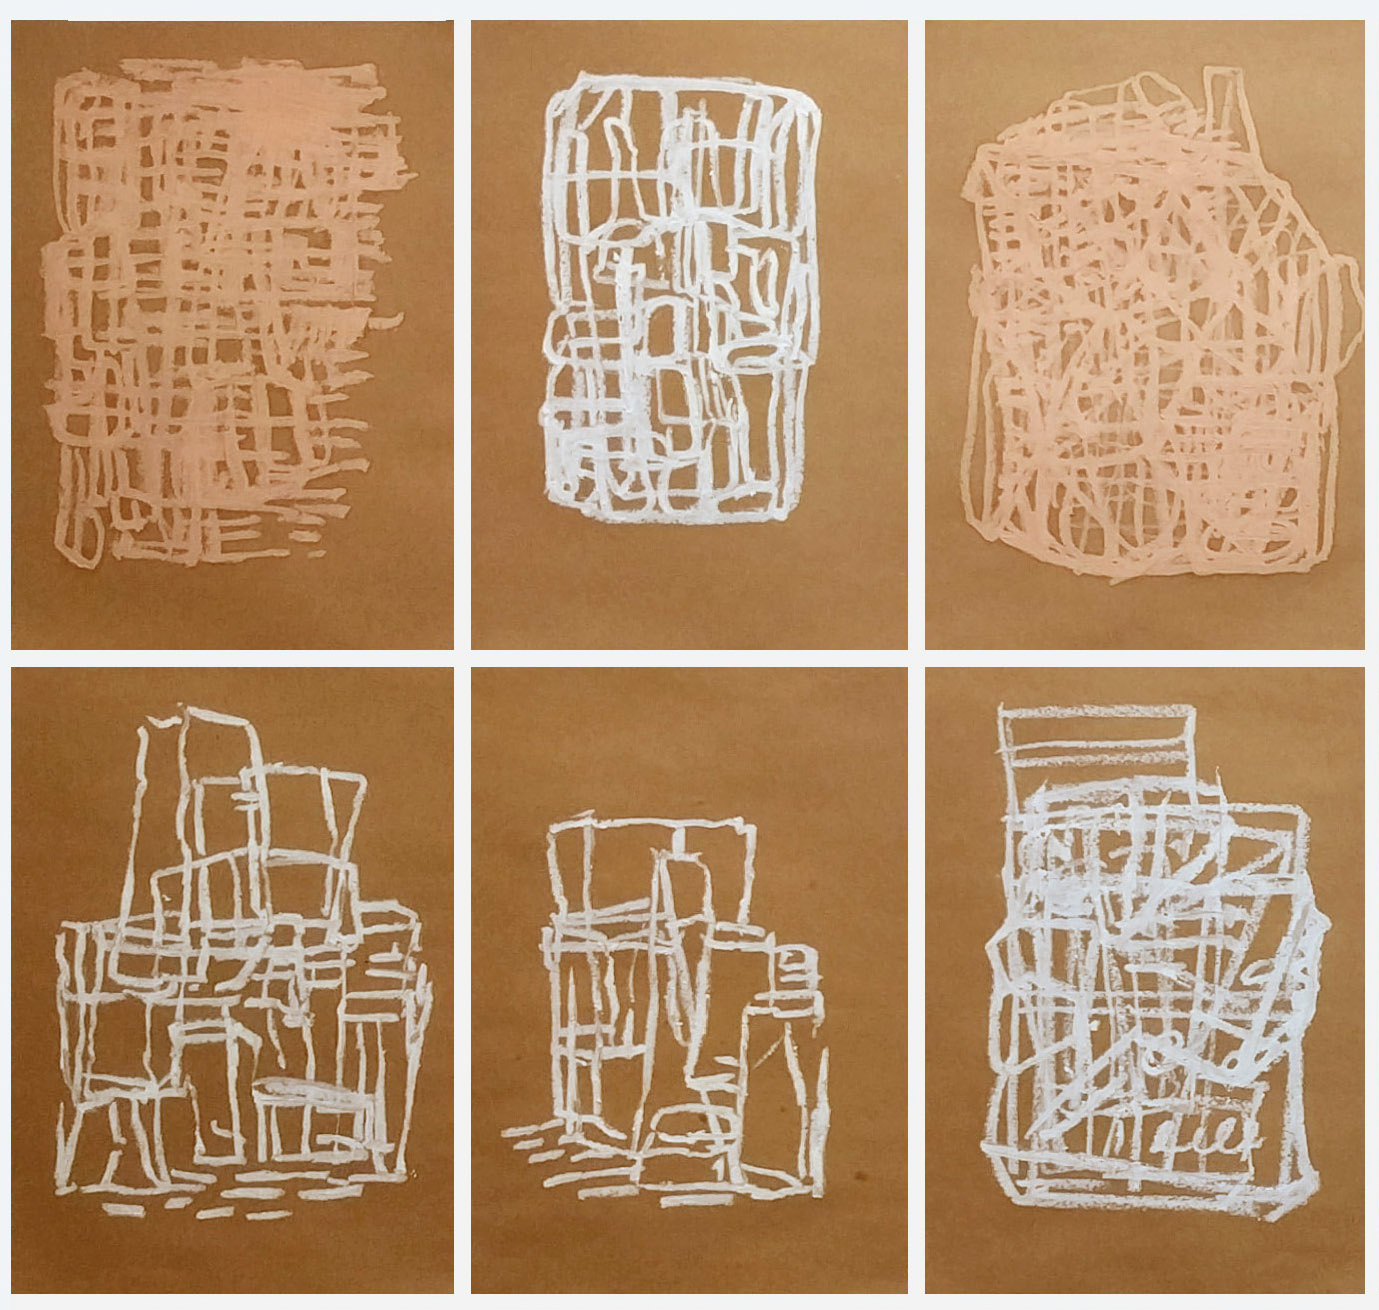 6 oil stick drawings in a 3 x 2 grid